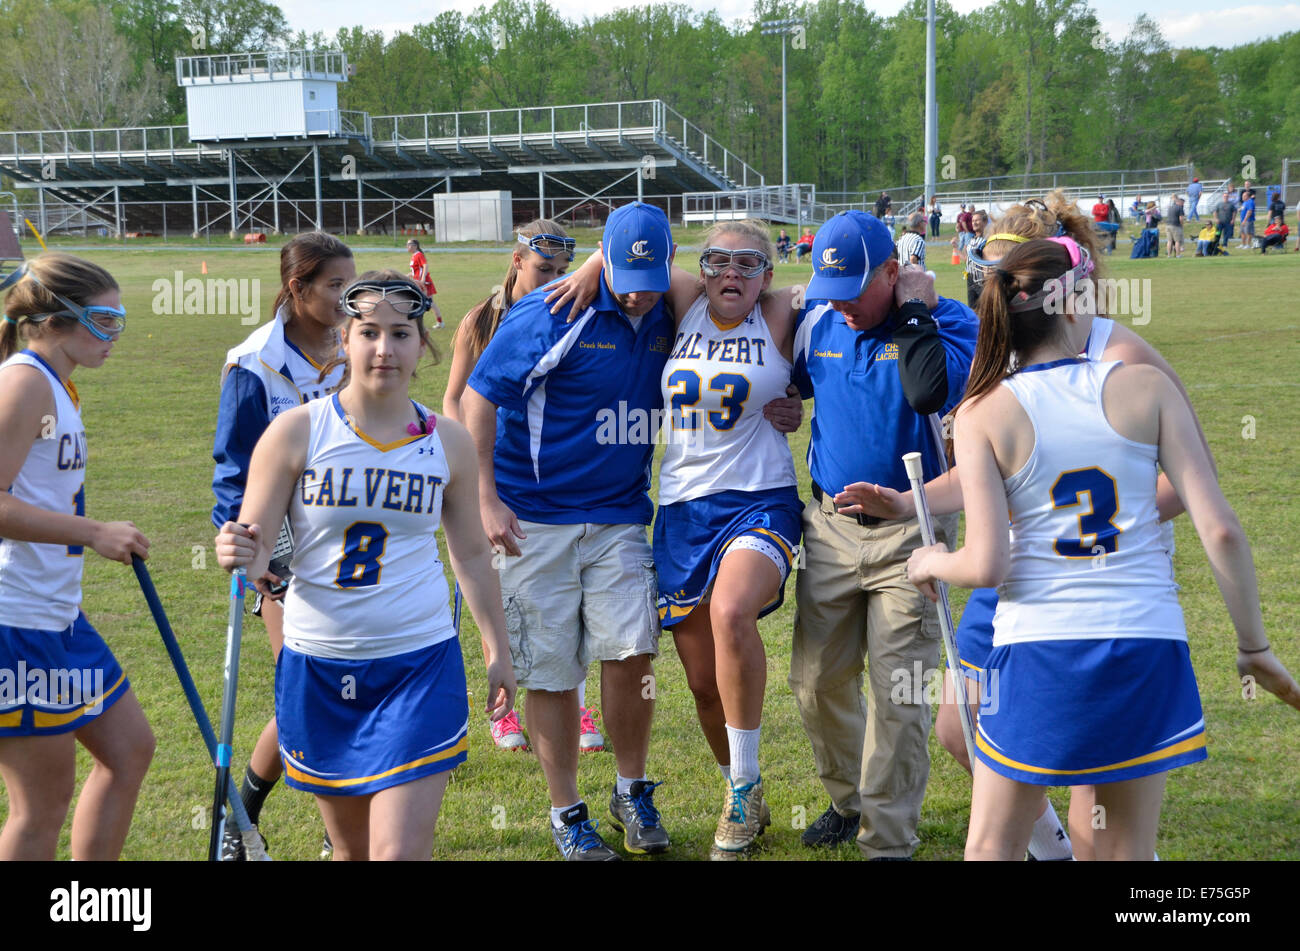 officials assist an injured female lacrosse player off the field  during a lacrosse game - Stock Image